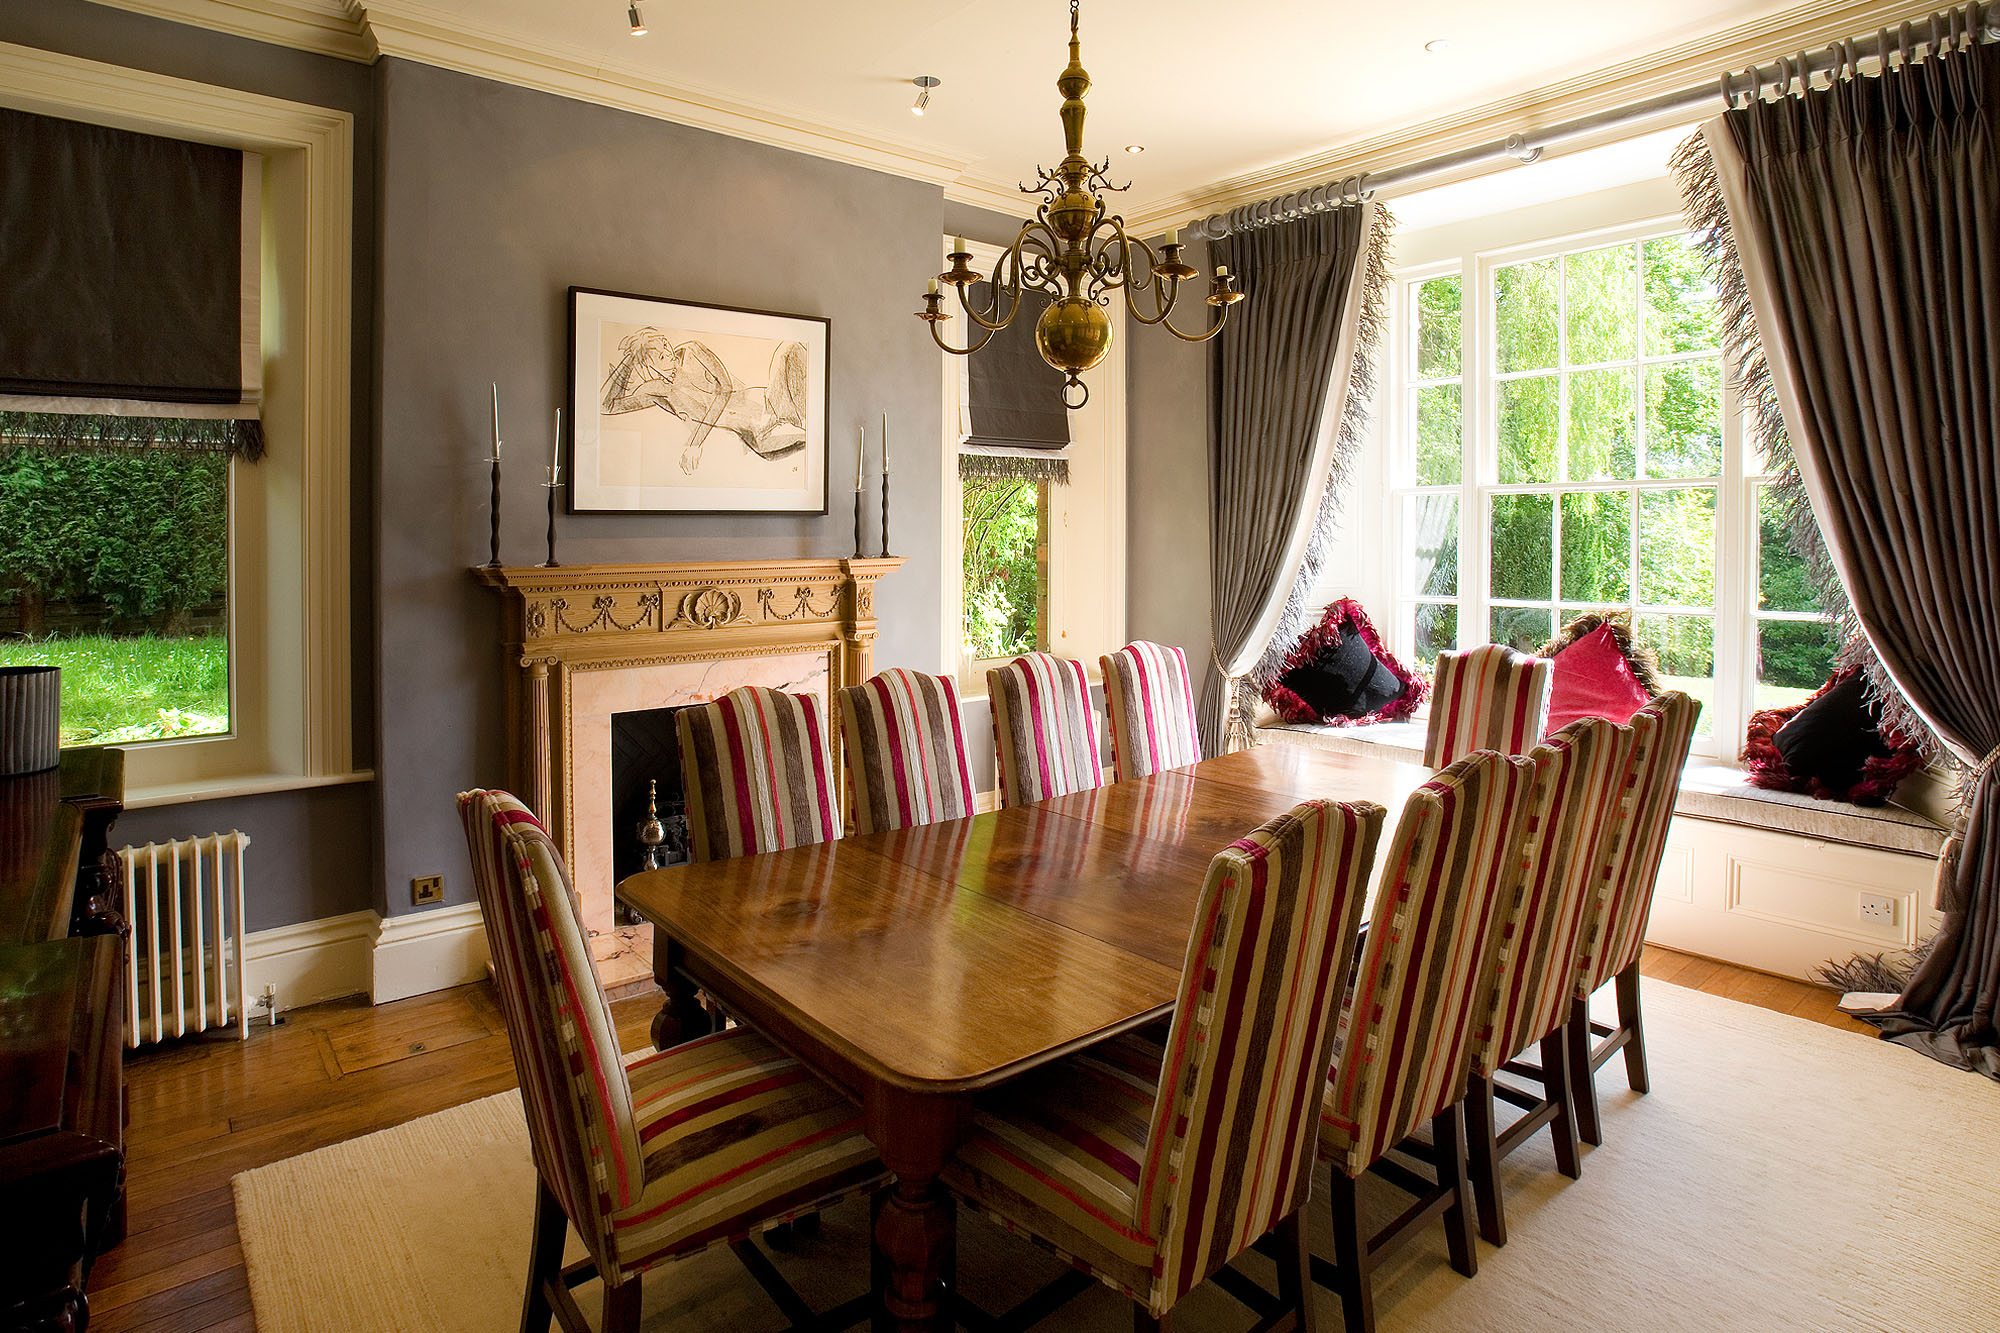 Romantic style dining room in a country residence with wooden dining table, striped dining chairs, wood floor with a plain cream rug, luxury trimmed curtains hung from a curtain pole. Red and grey theme.